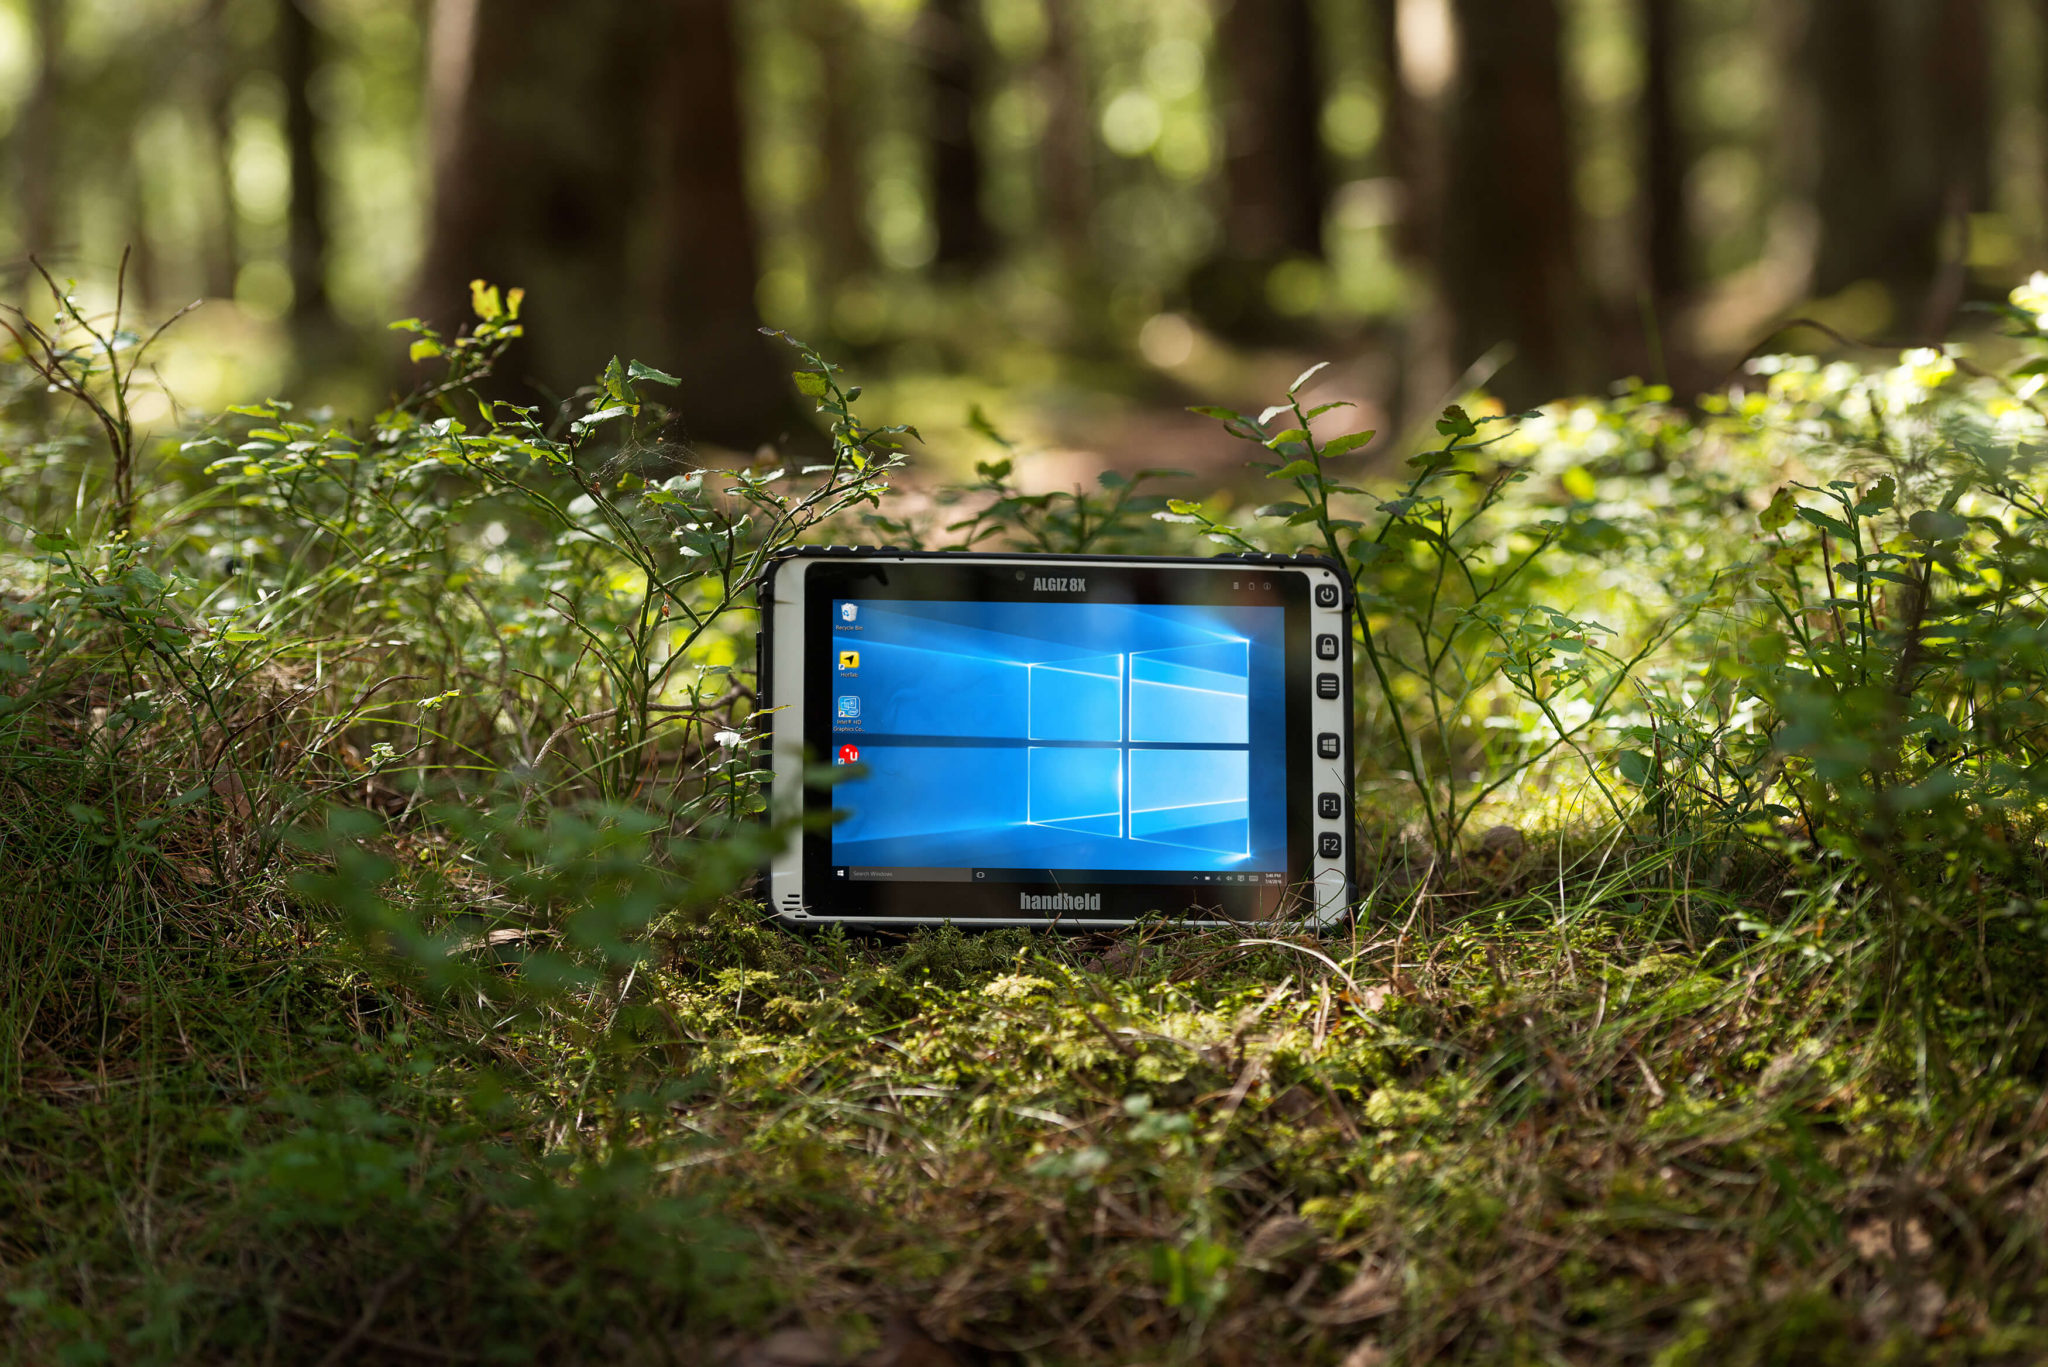 Algiz-8X-rugged-windows-tablet(1)